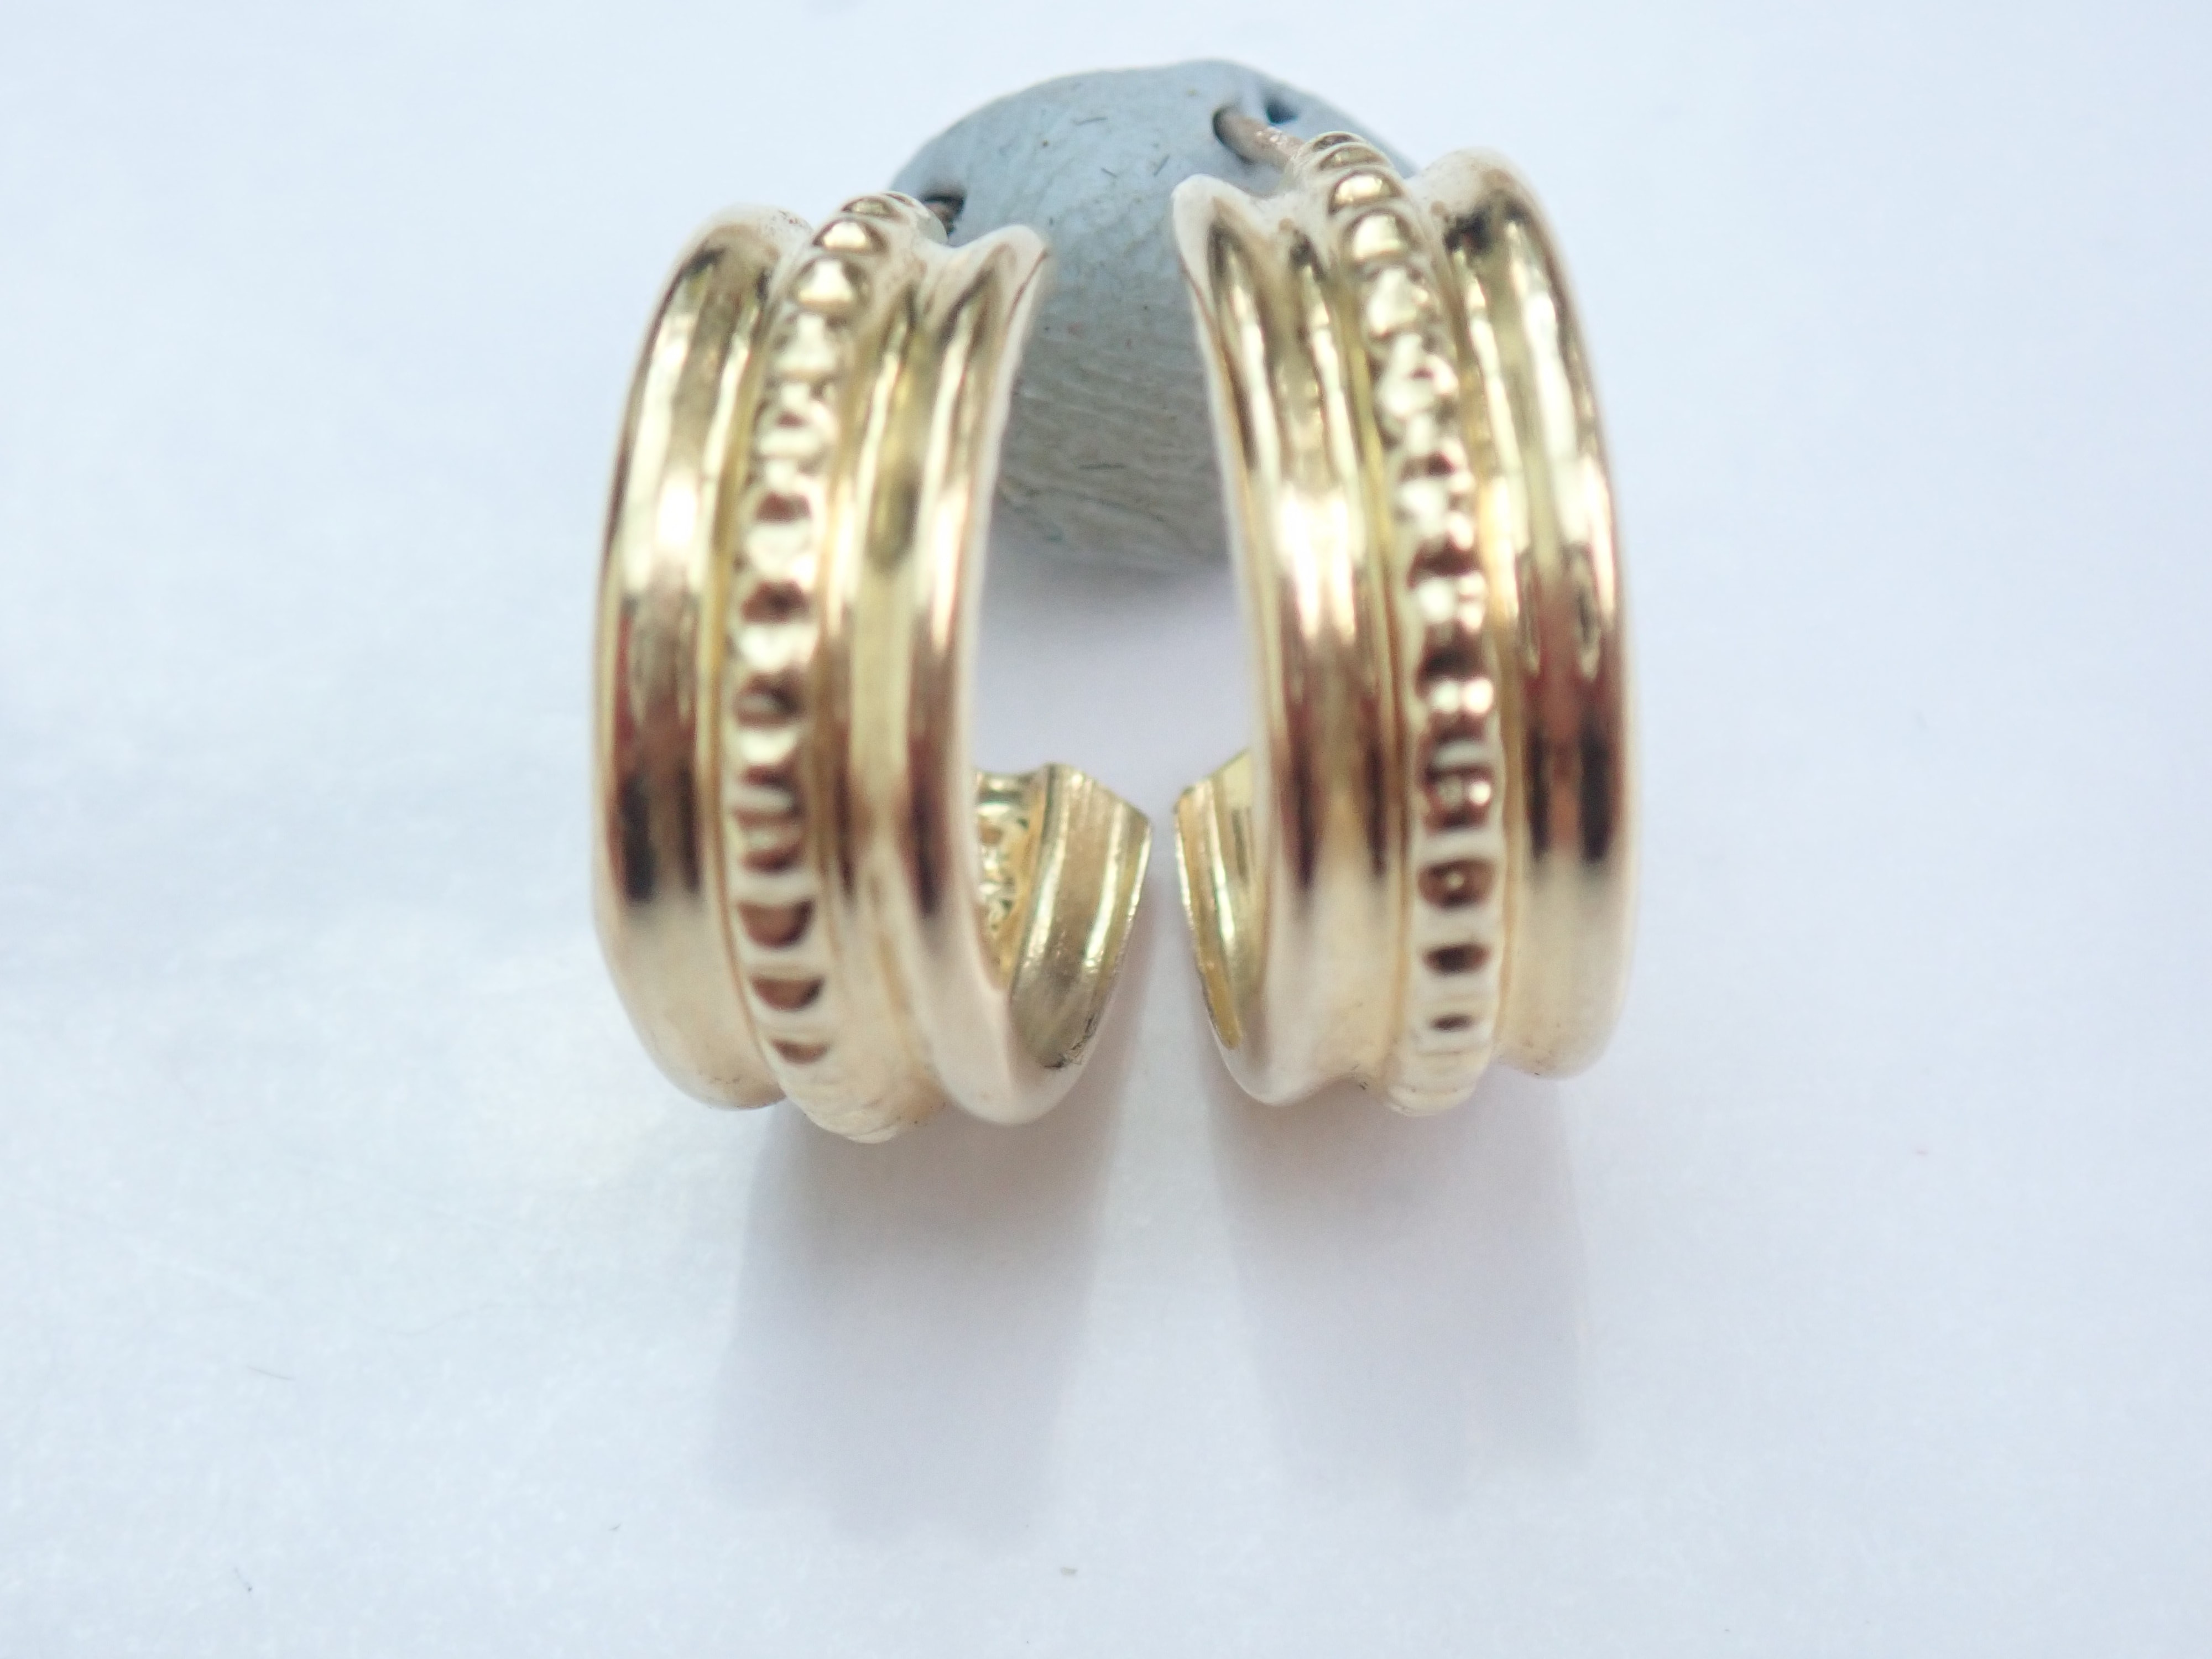 9k Yellow Gold Patterned Half Hooped Earrings 0.63g #10